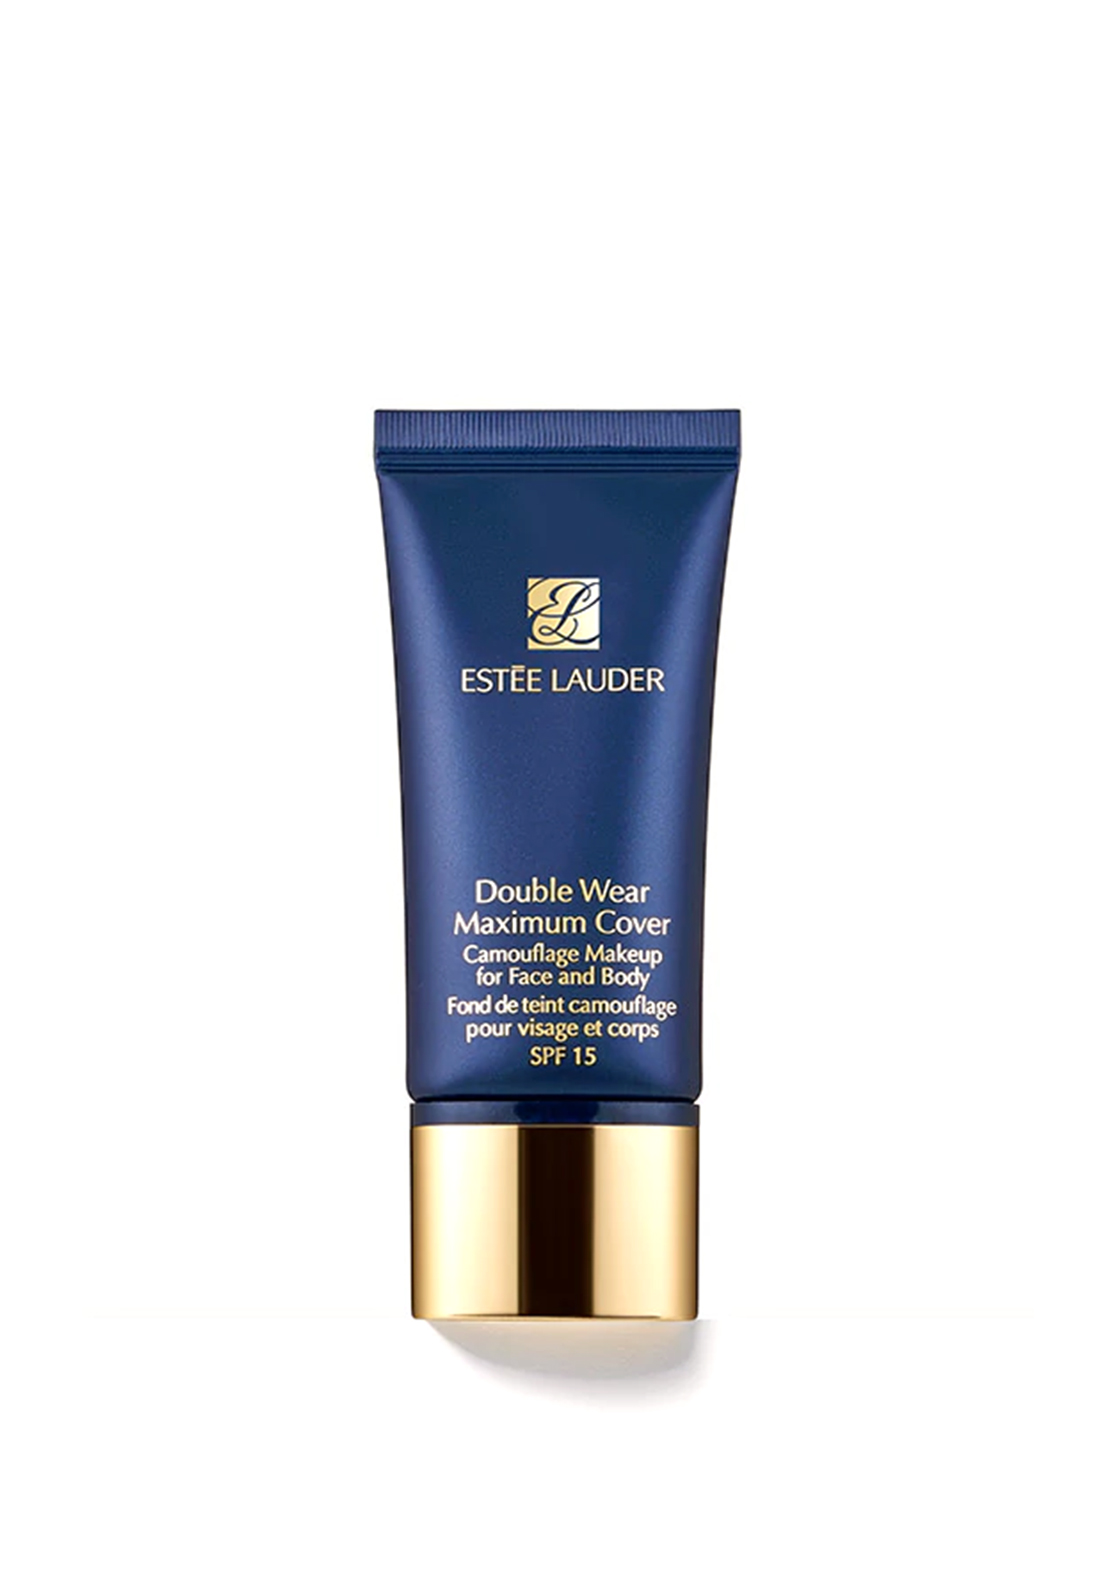 Estee Lauder Double Wear Maximum Cover Foundation, Creamy Vanilla